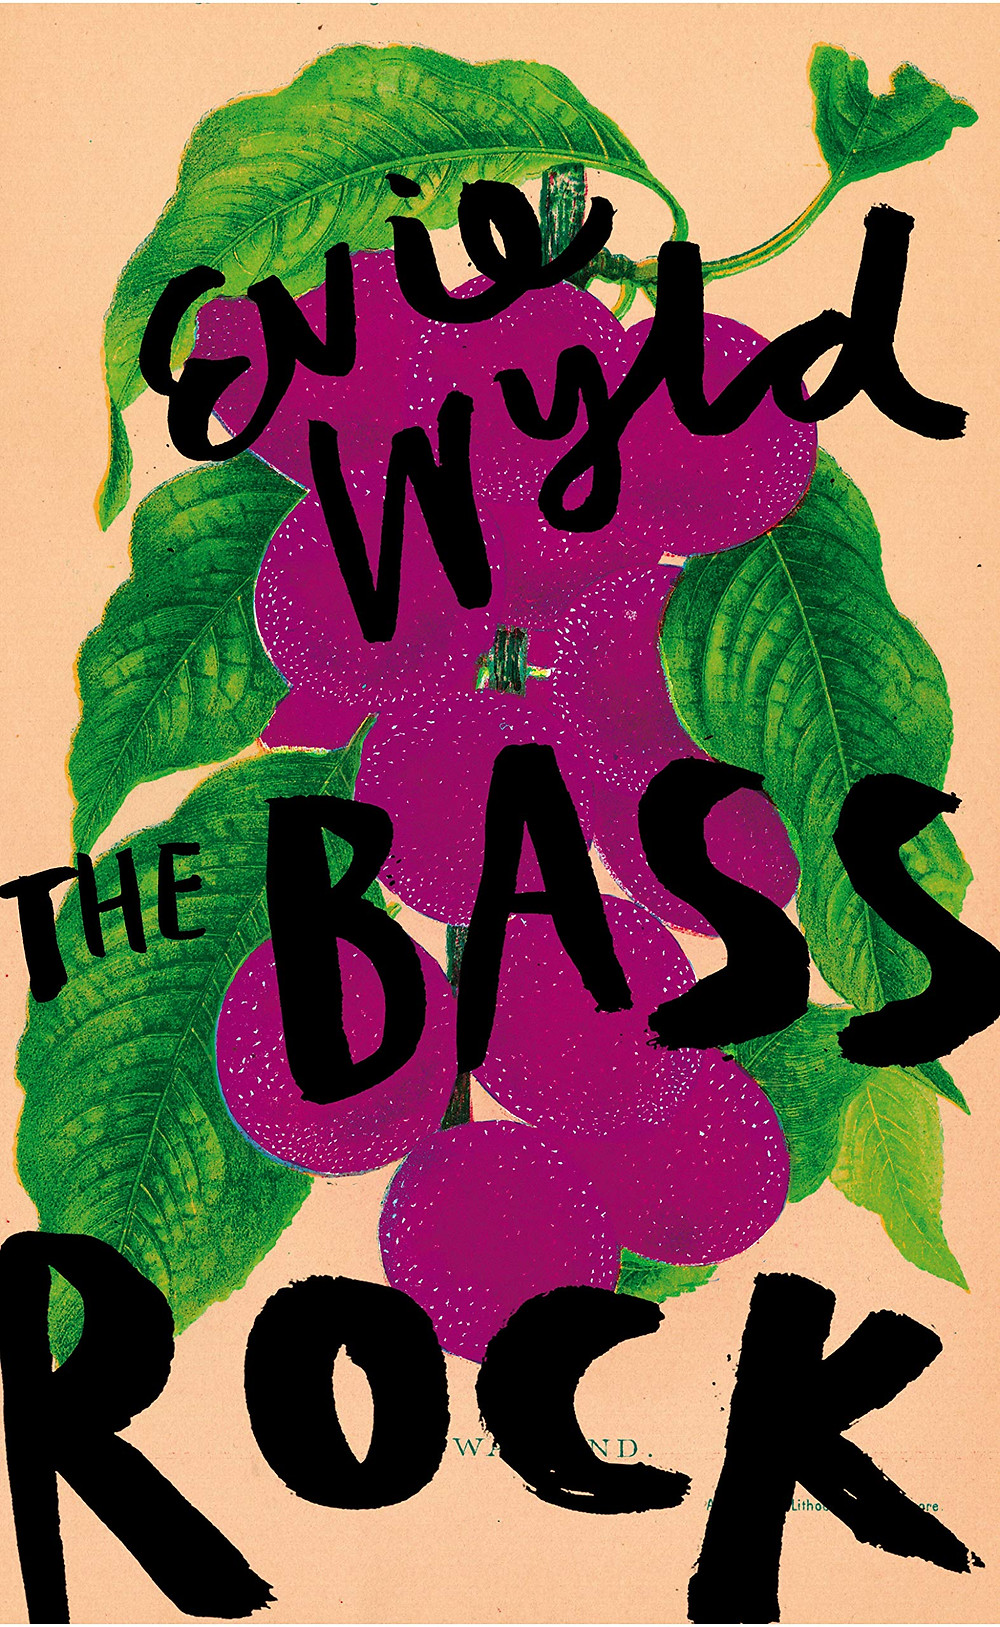 THE BASS ROCK by Evie Wyld : thebookslut book reviews the book slut